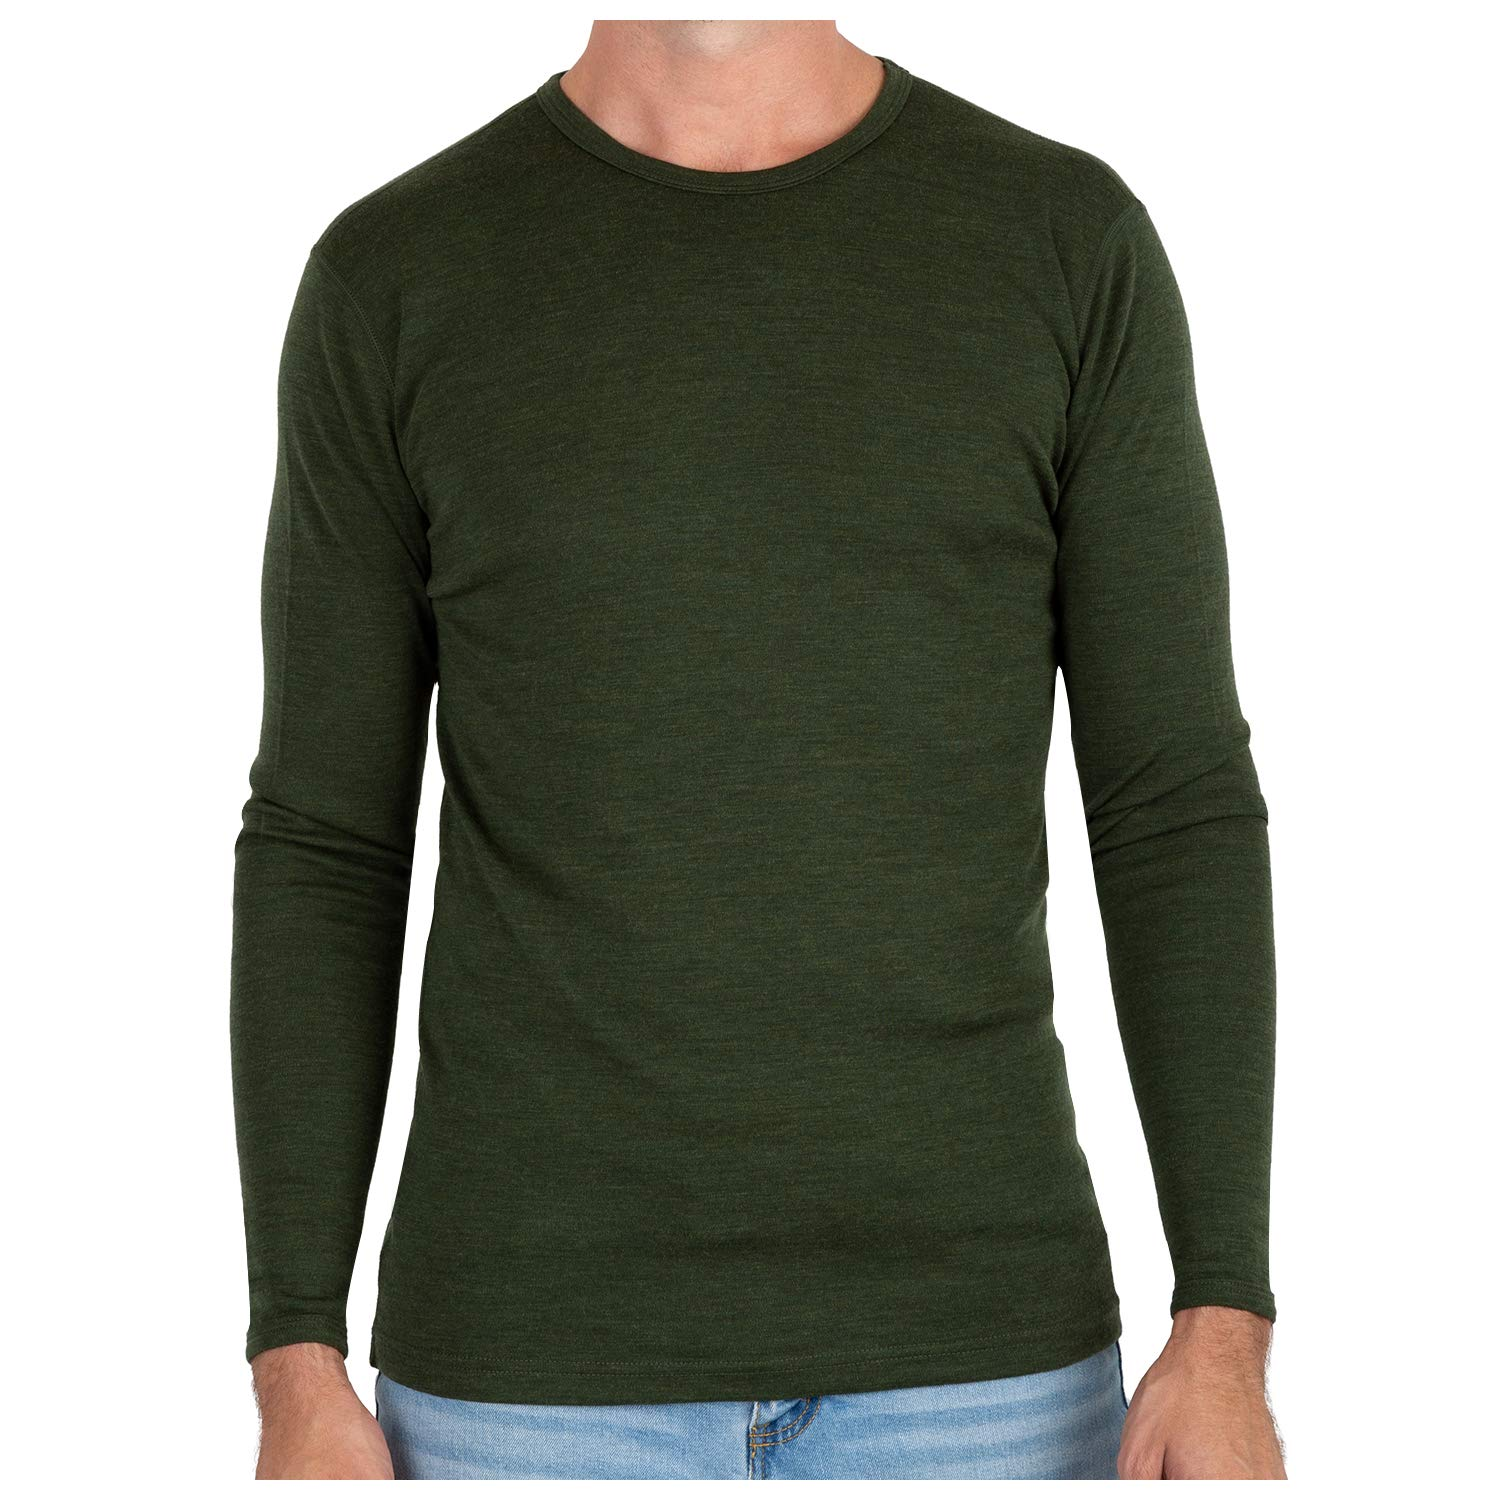 MERIWOOL Men's Merino Wool Midweight Baselayer Crew - Army Green/Small